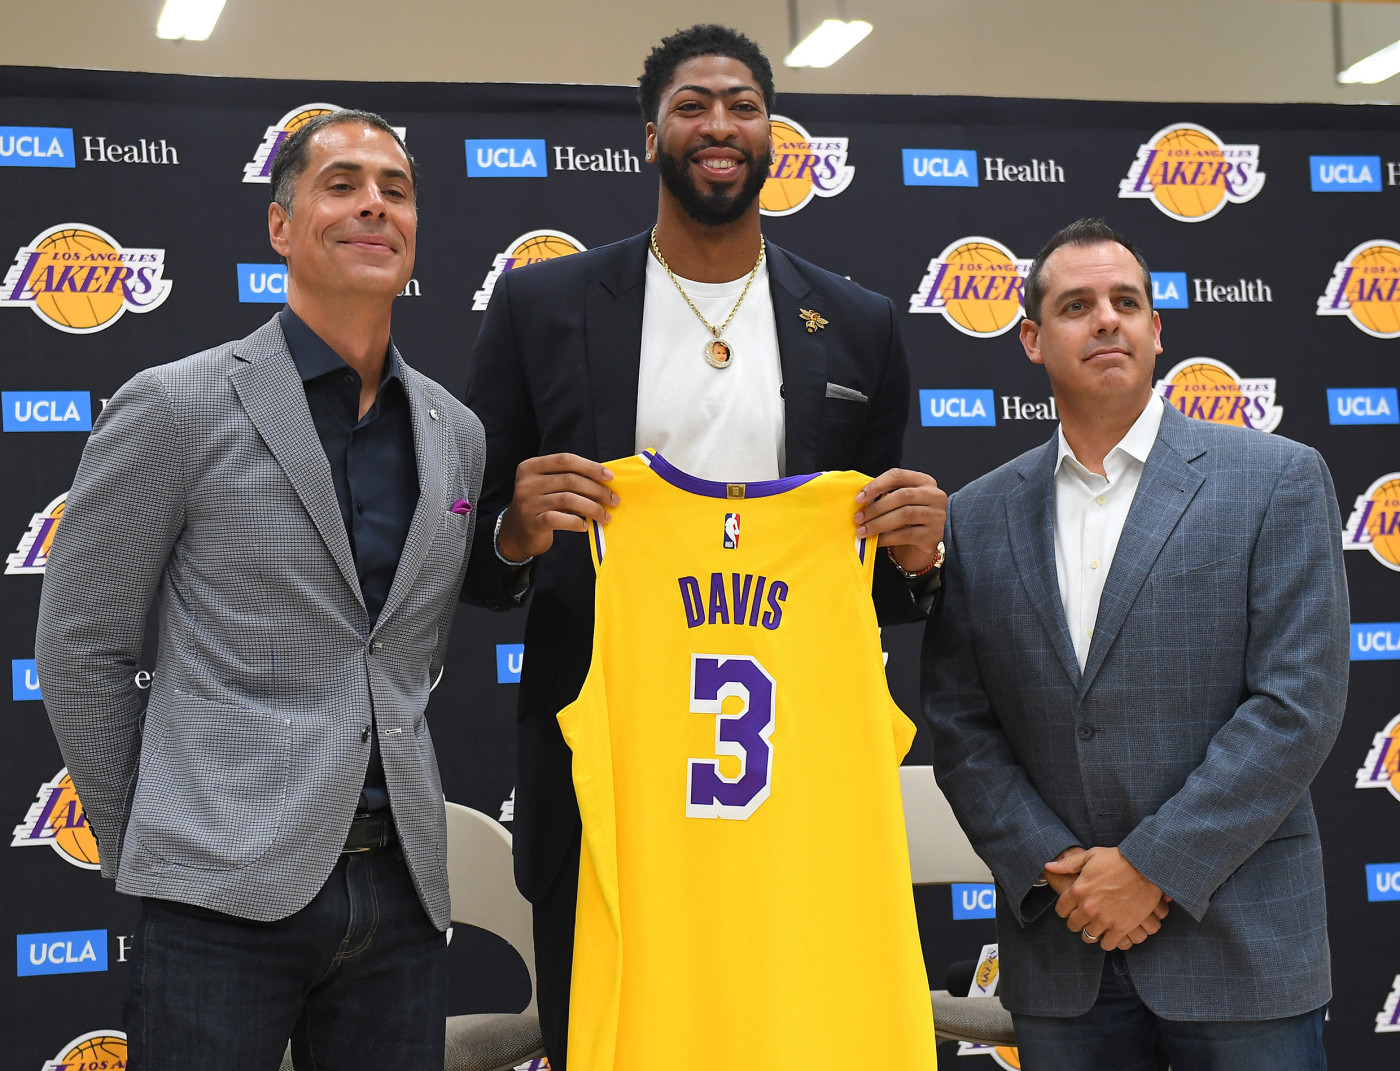 Anthony Davis Pelinka Vogel 2019 Press Conf